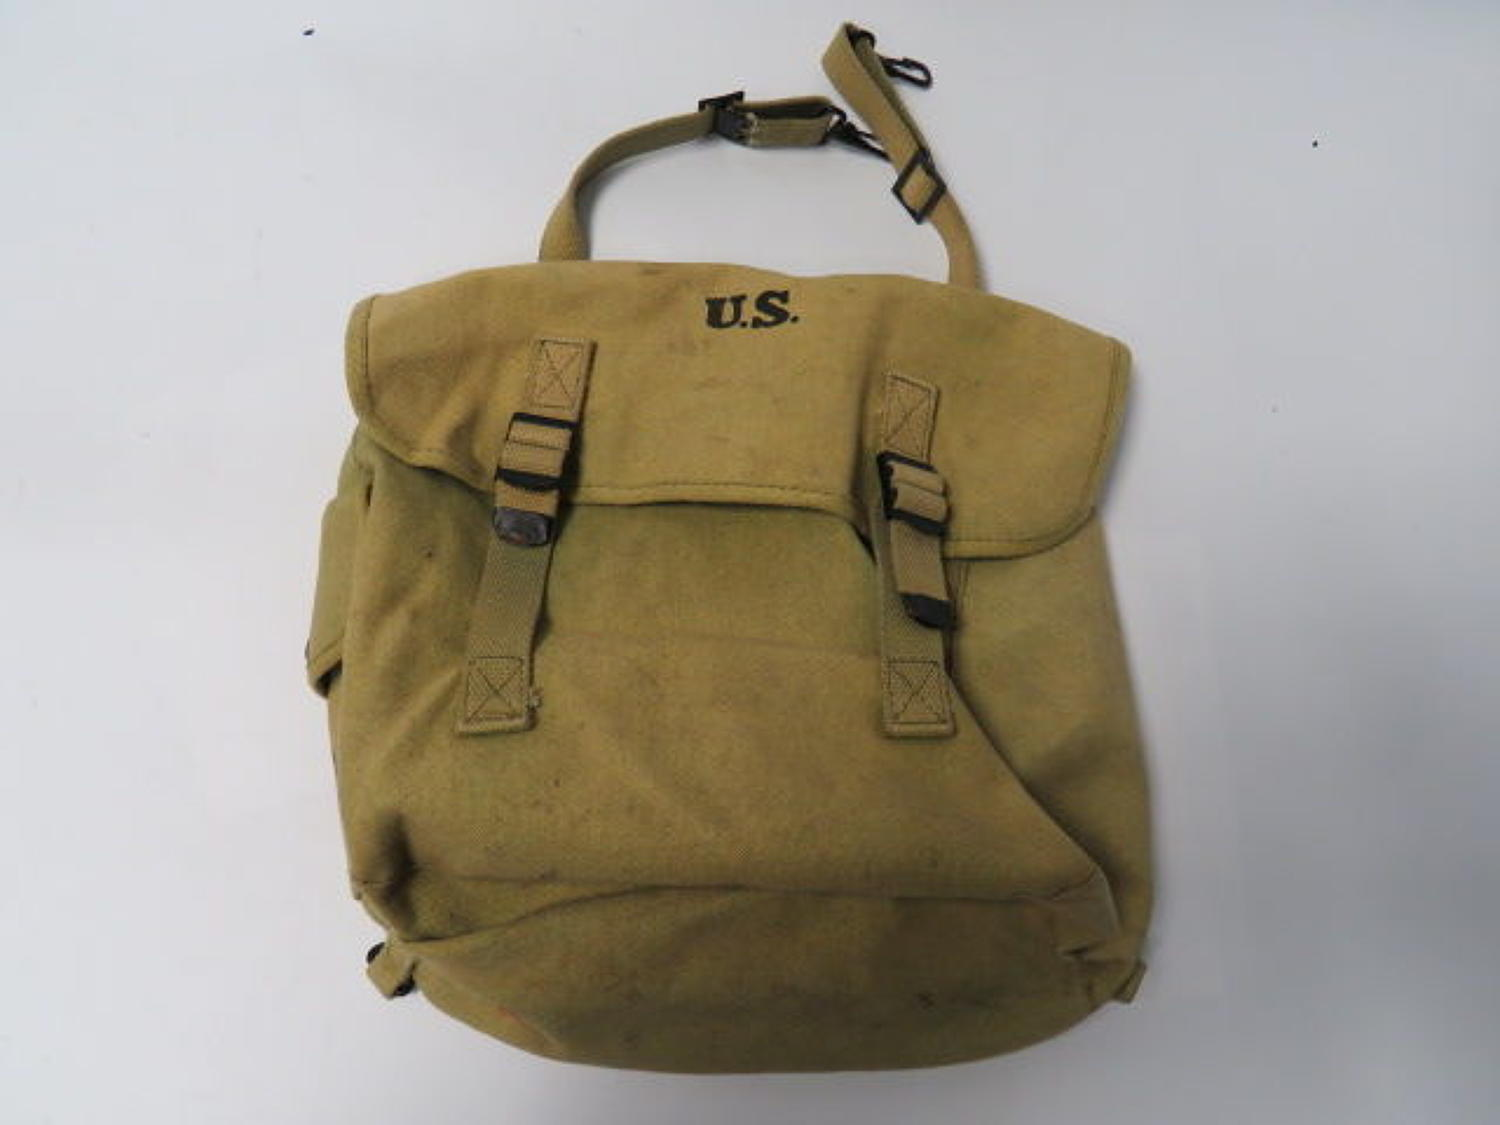 WW 2 American M-36 Musette Side Bag